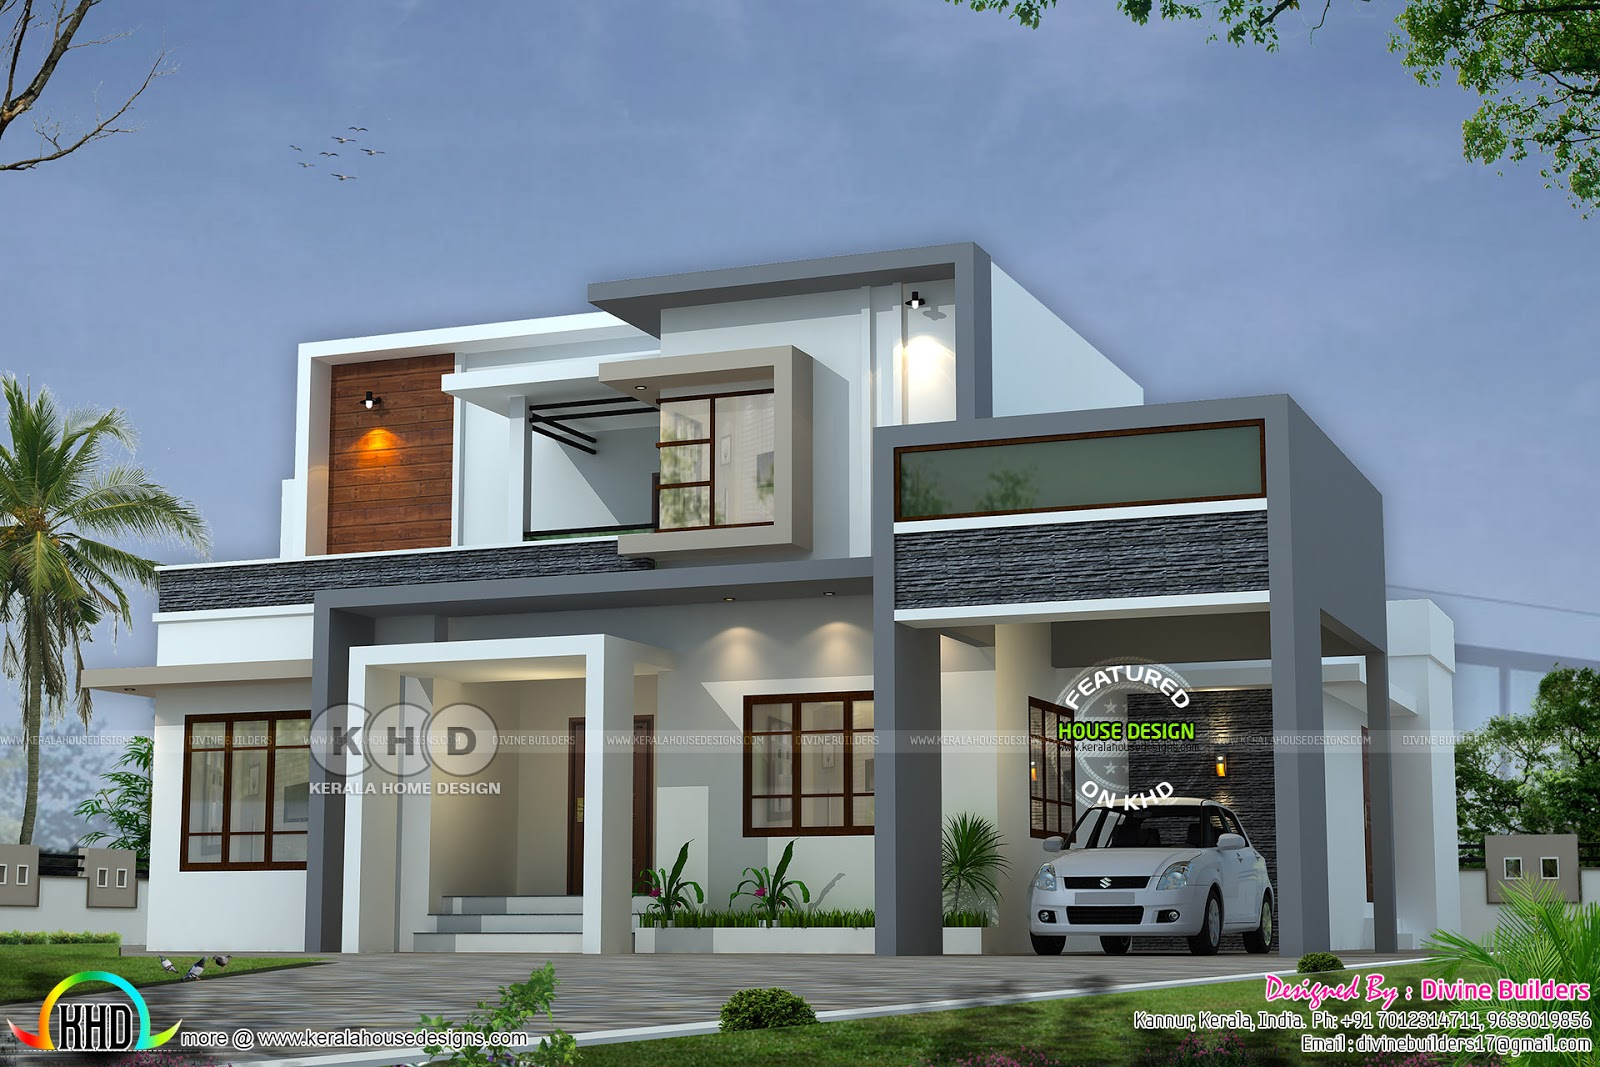 2017 kerala home design and floor plans for Home blueprint ideas